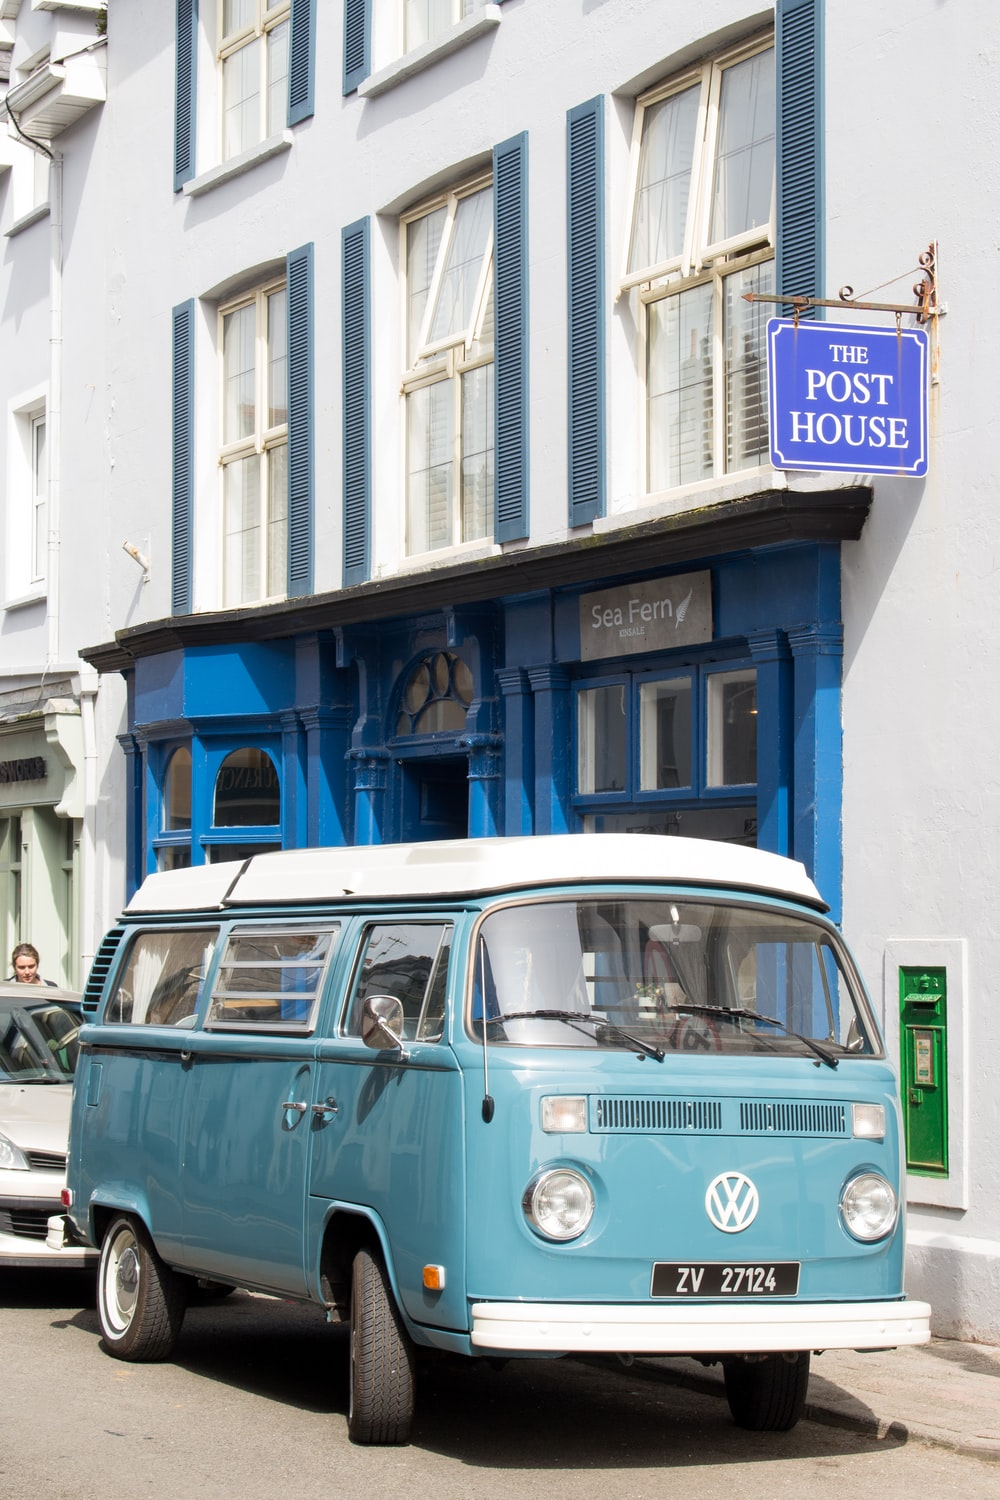 blue and white Volkswagen van besides The Post House